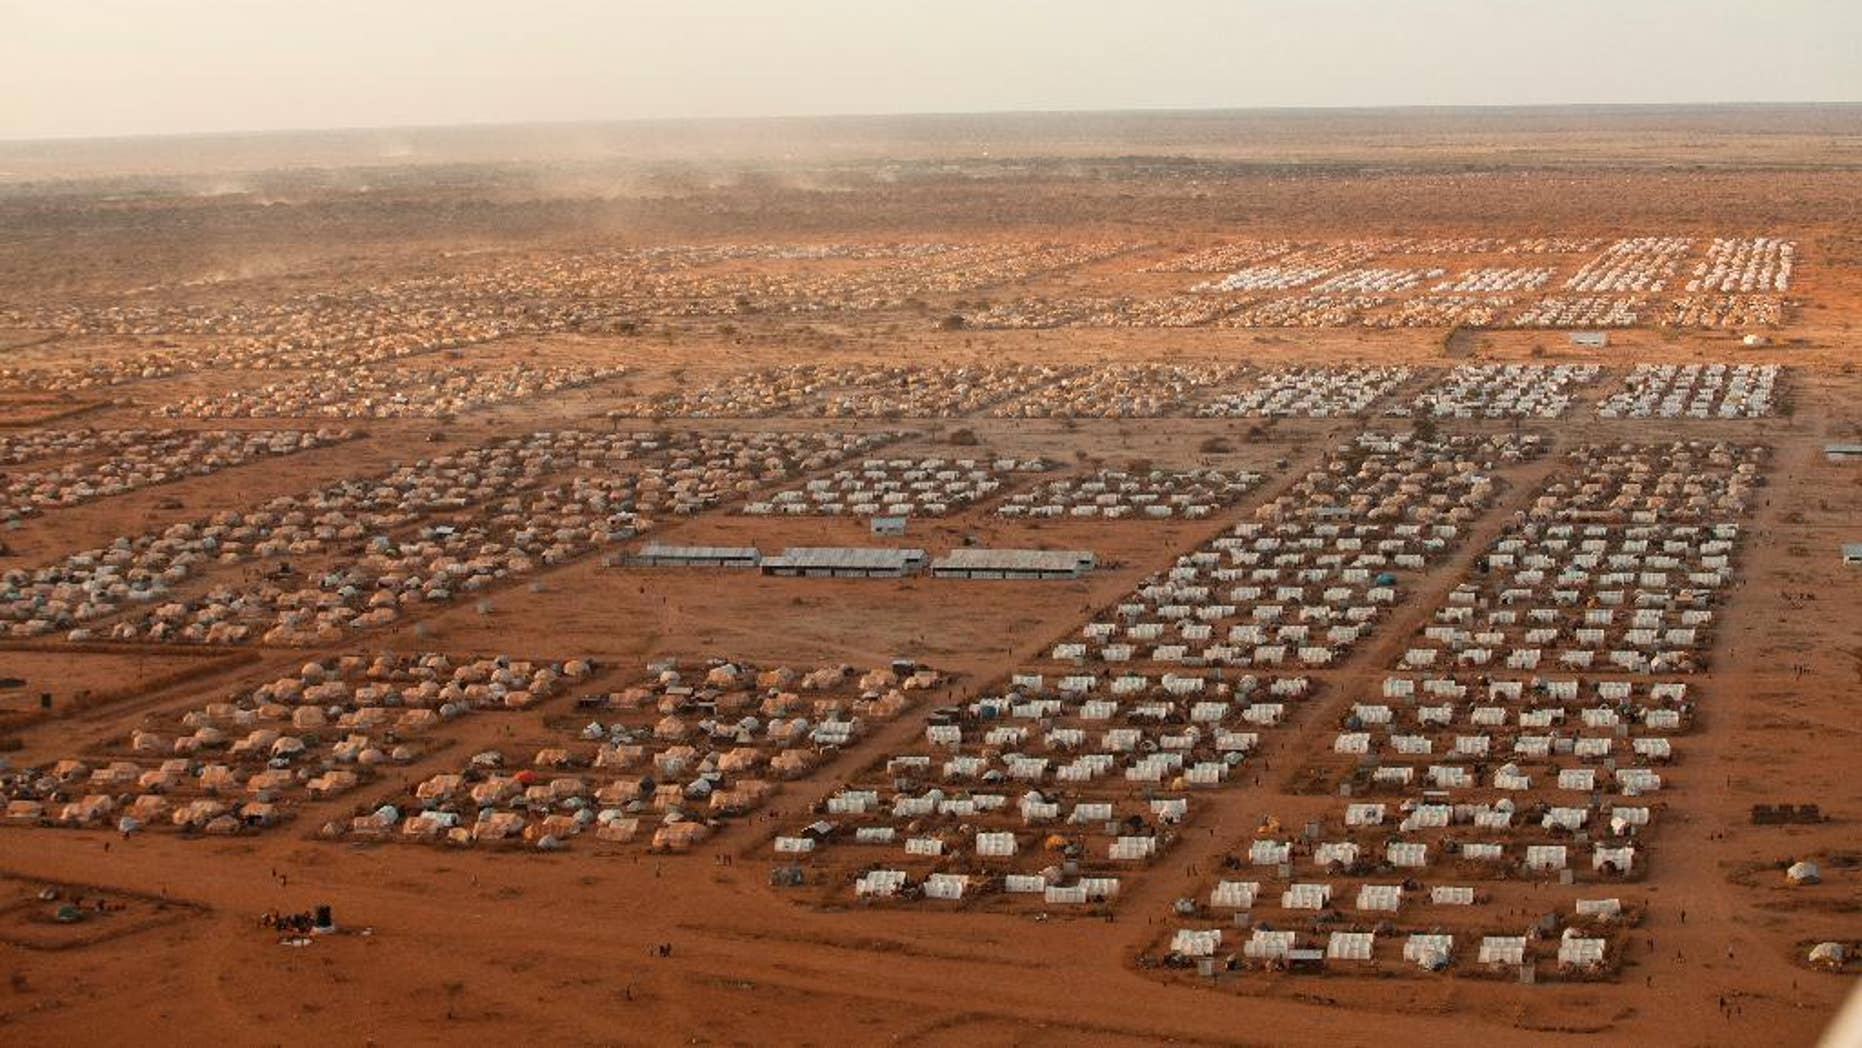 """This undated photo provided by MoMA shows IFO 3, an extension to the world's largest refugee camp complex in Dadaab, Kenya. The photograph is part of the exhibit """"Insecurities: Tracing Displacement and Shelter,"""" at the museum in New York. The new exhibit invites visitors to take an entirely new look at the concept of home and design, this time through the lens of migration and global refugee emergencies, in which temporary shelters, organizers say, are being deployed on a scale akin to that after World War I. (Brendan Bannon/IOOM/UNHCR/MoMA via AP)"""